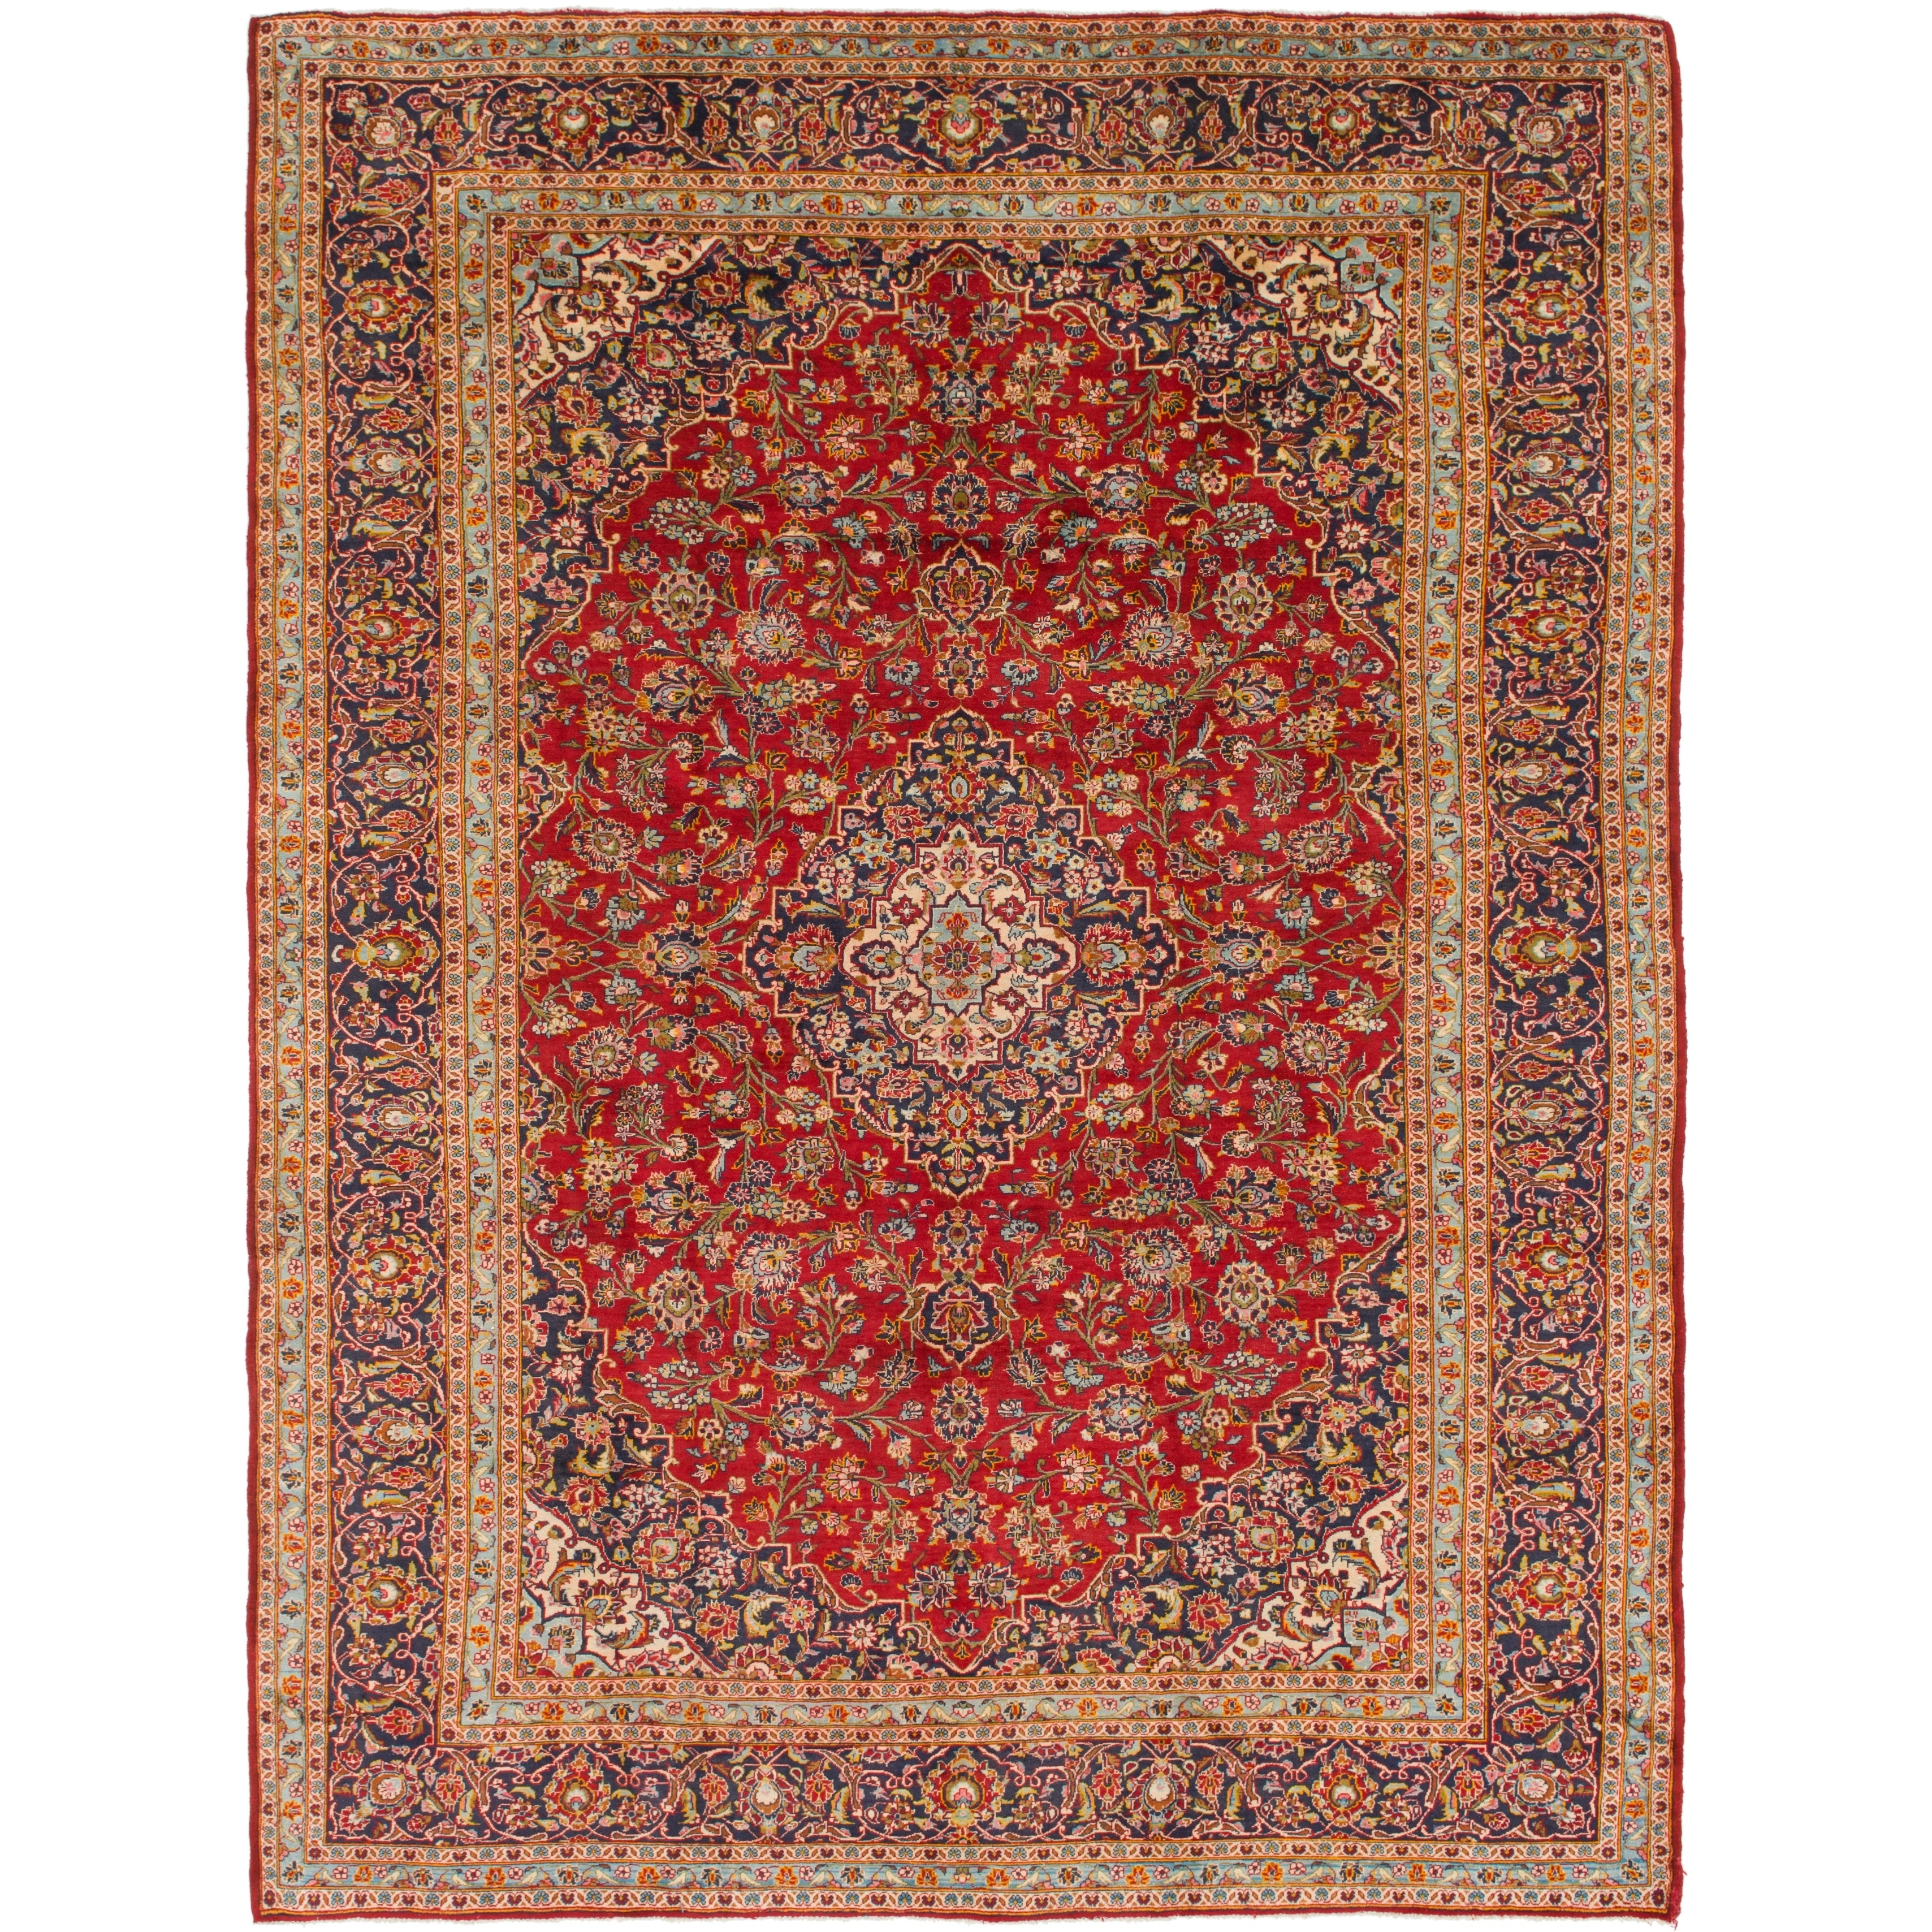 Hand Knotted Kashan Semi Antique Wool Area Rug - 9 10 x 13 3 (Red - 9 10 x 13 3)